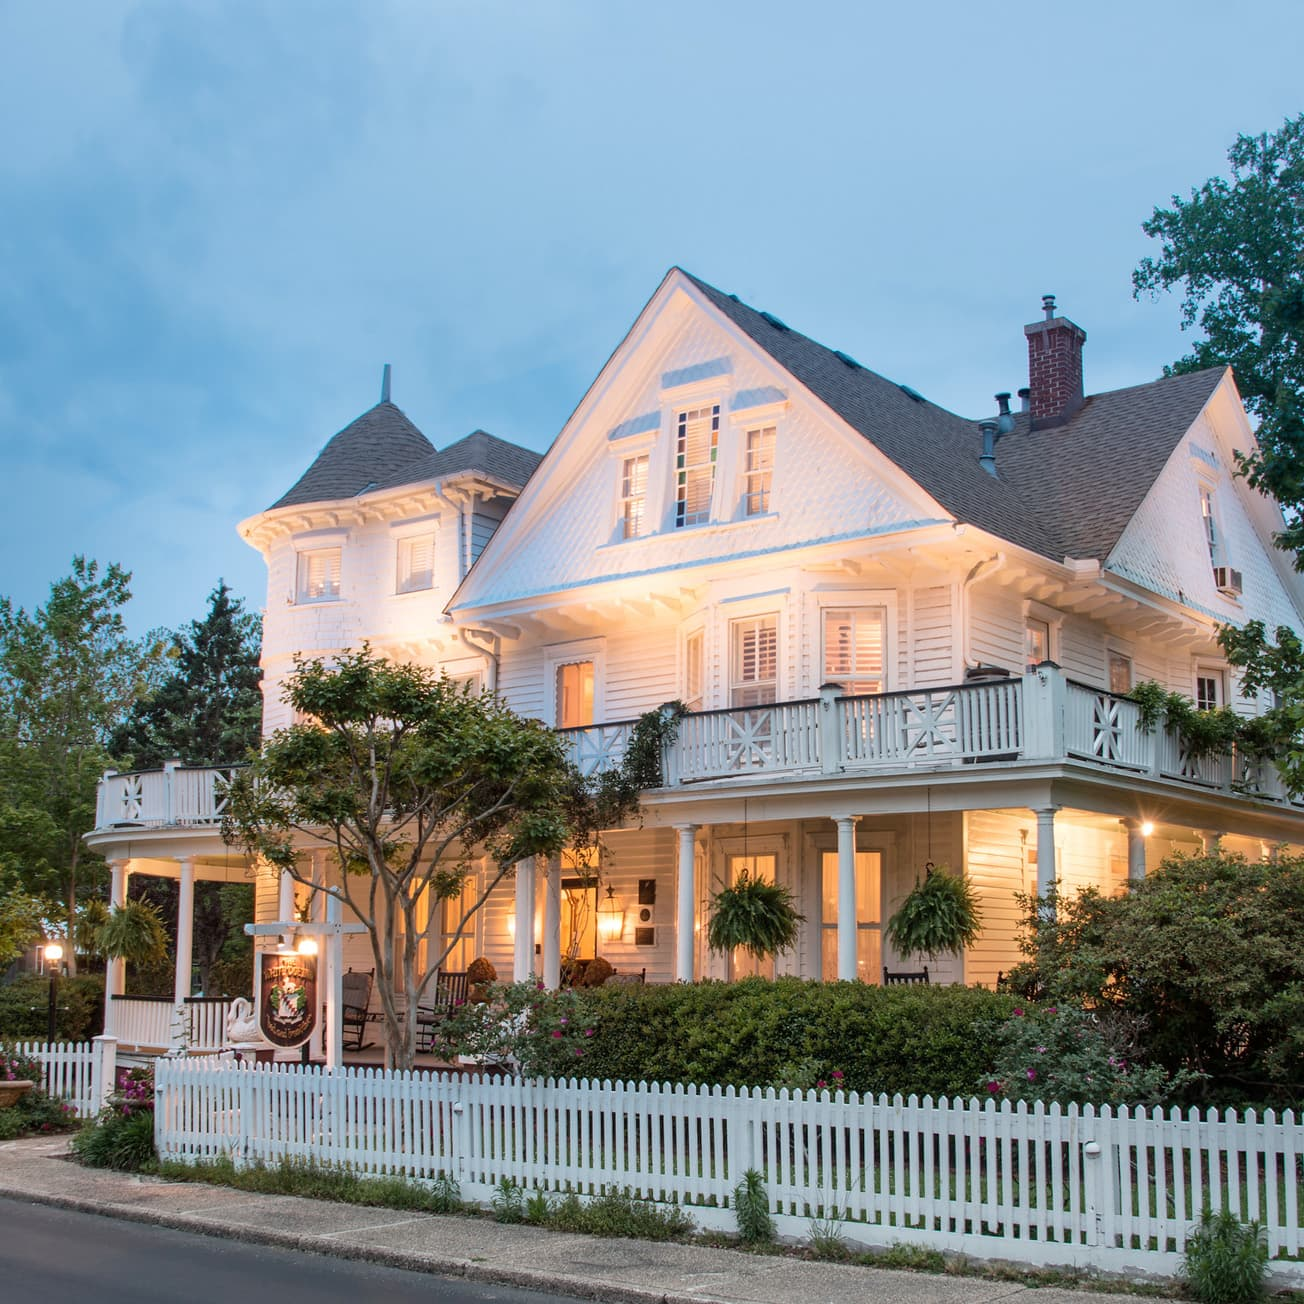 historic outer banks inn at night